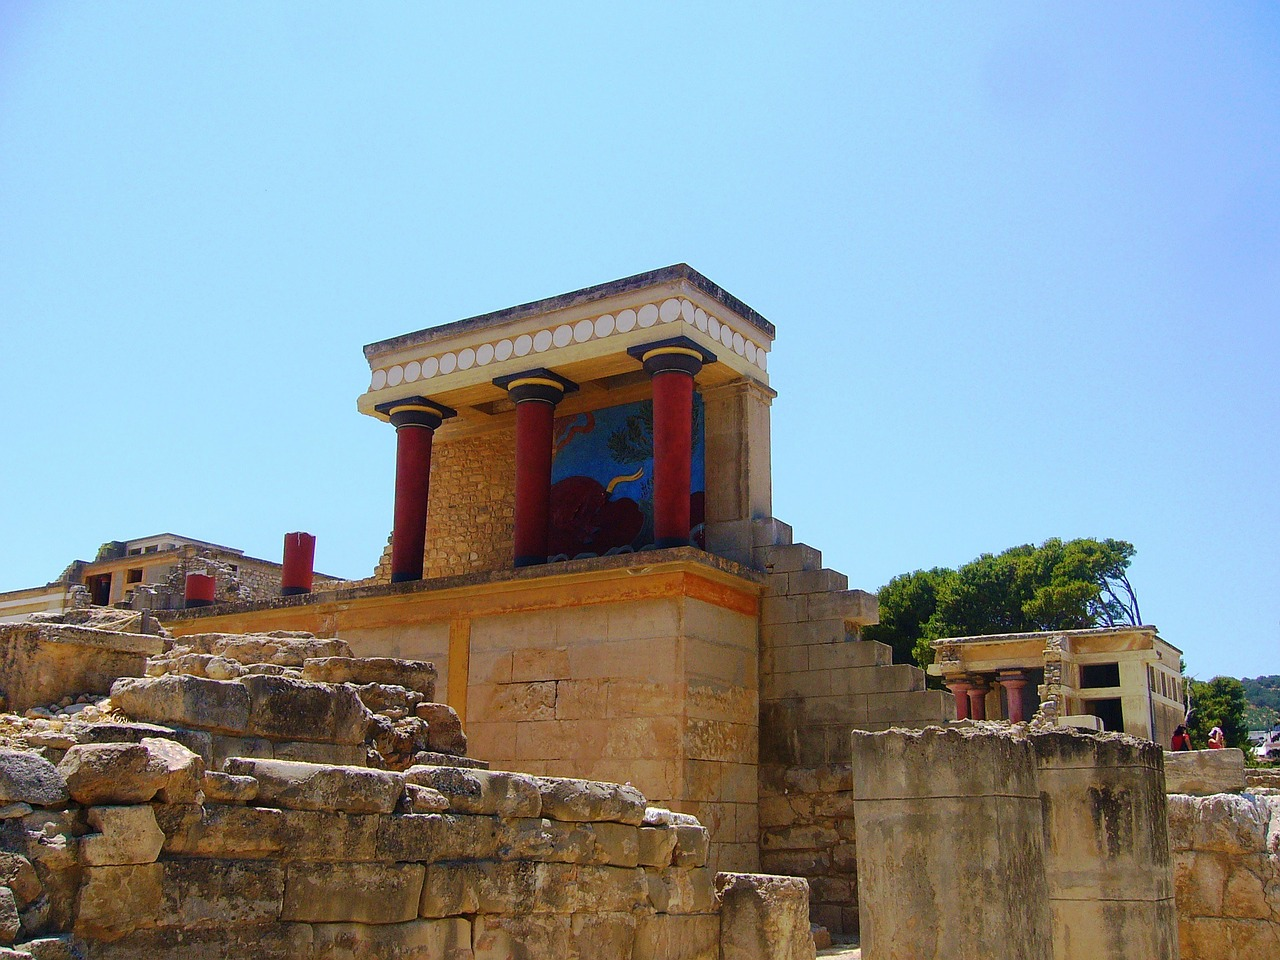 The Palace of Knossos, Crete, Greece. Learn what to do in Crete and how to make the most of your trip to Crete from this article. #crete #greece #cretetips #greecetips